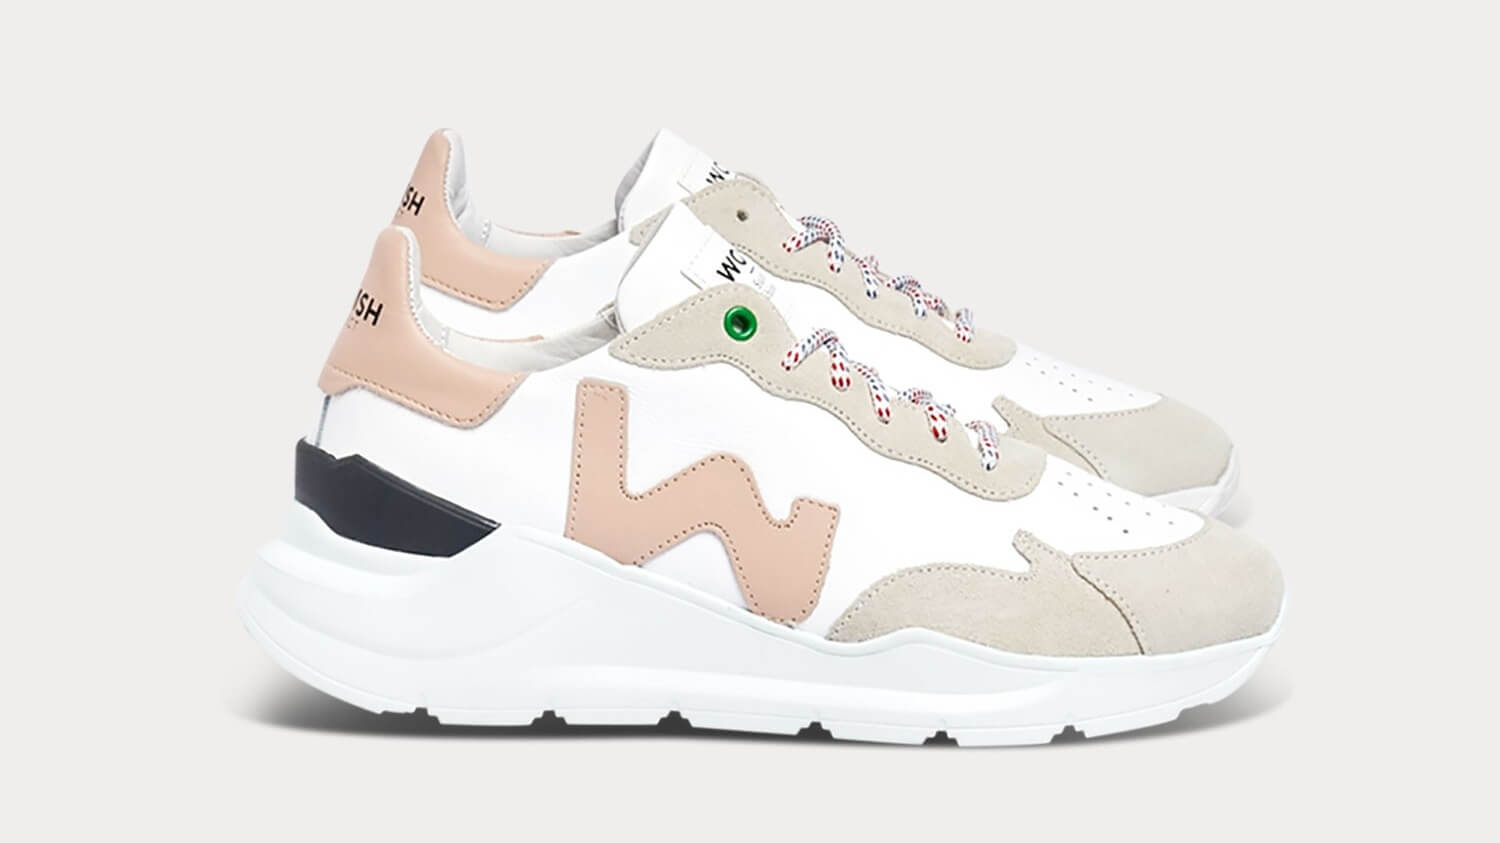 These Chunky 'Fila' Style Sneakers Are Made From Vegan Apple Leather